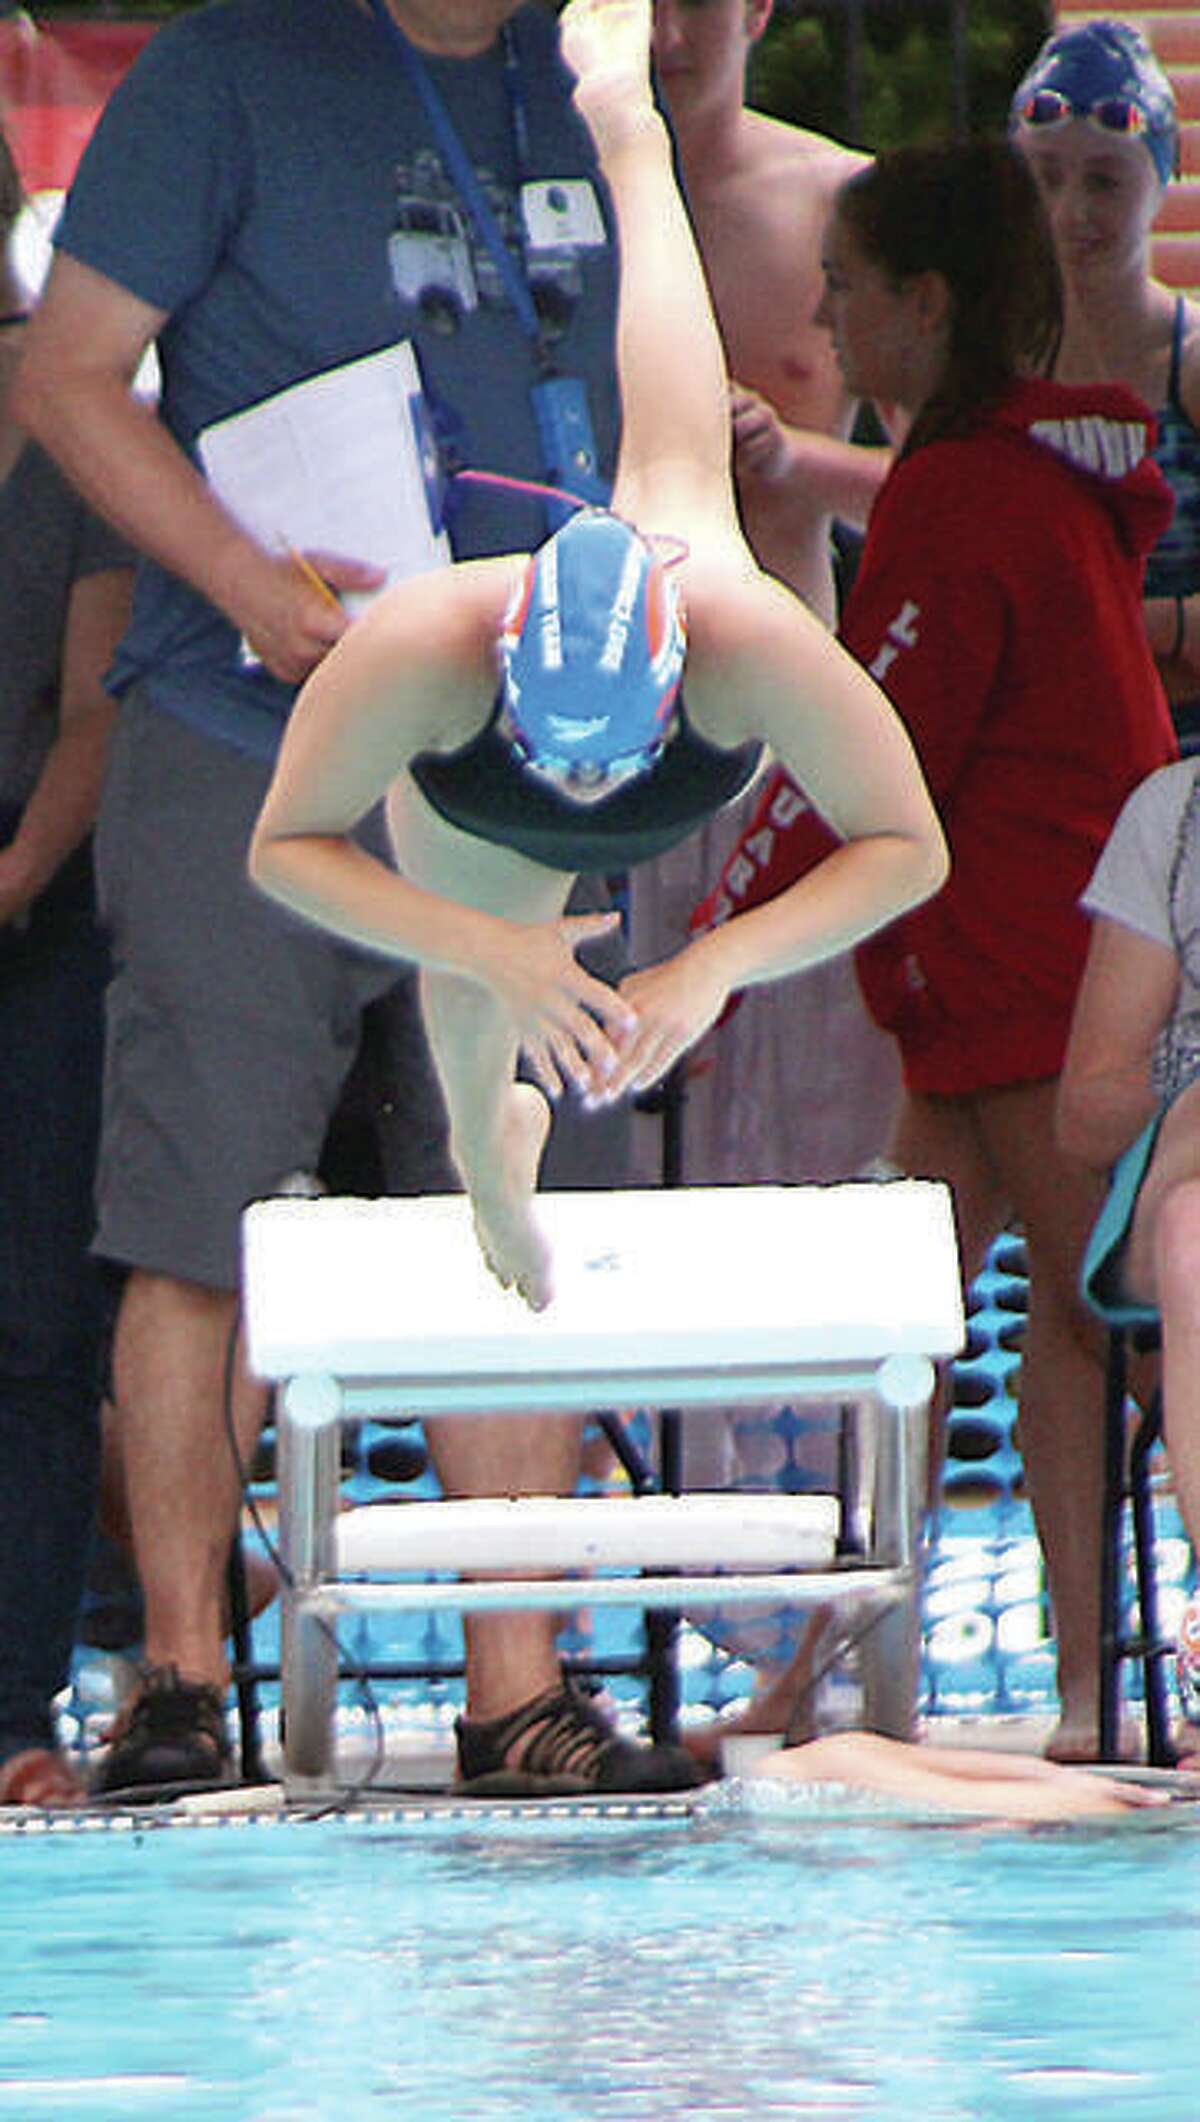 Truman State's Ginny Schranck of Alton is among NCAA Division II swimmers waiting to see if she has earned an invitation to the national championship meet, set for March 17-20 in Birmingham, Ala. She is shown during club competition for the Edwardsville Breakers.